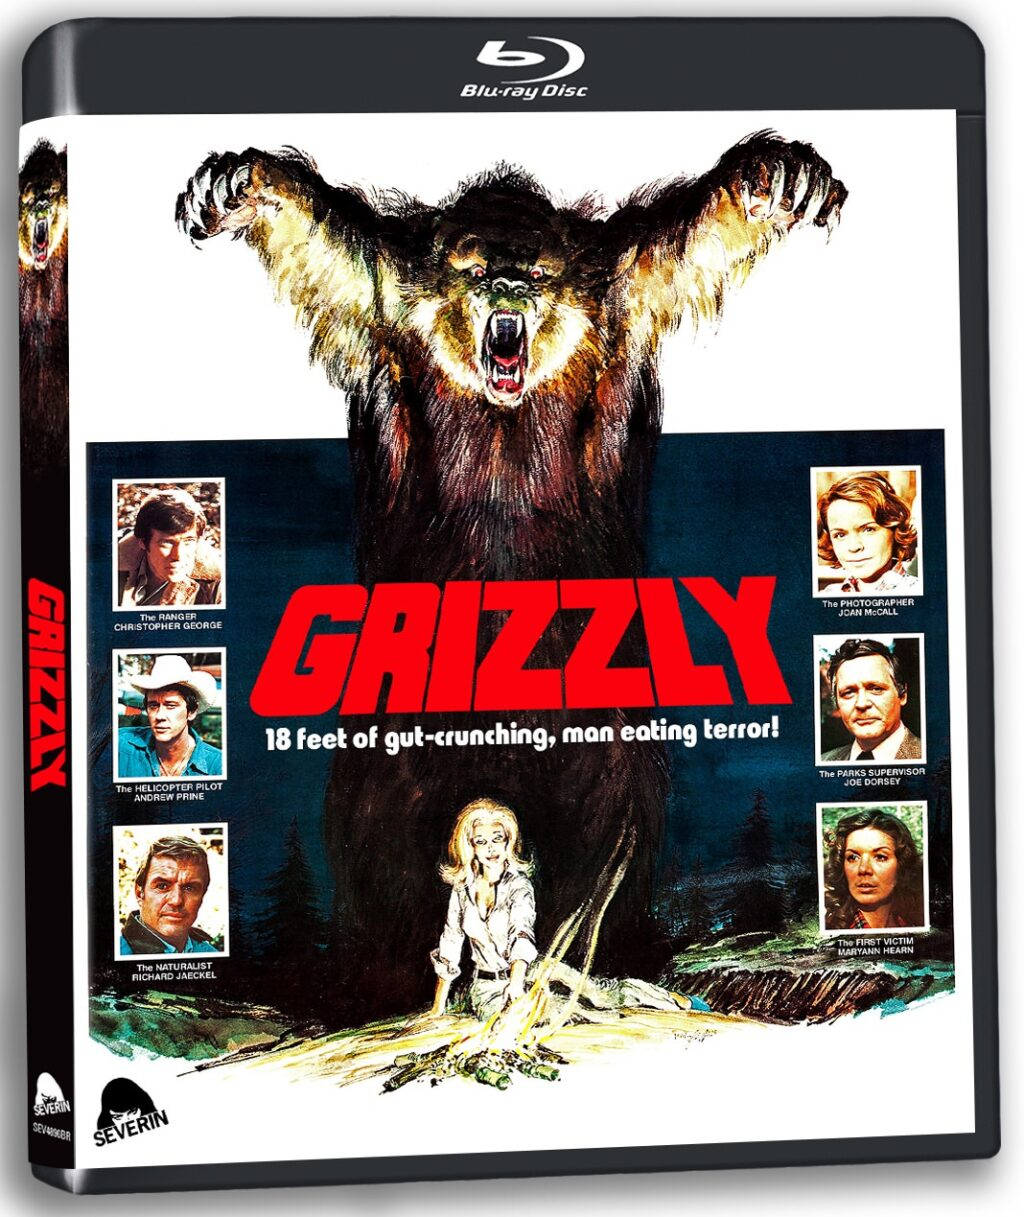 grizzly blu 2 1024x1217 1 - GRIZZLY Blu-ray Review - Just When You Thought It Was Safe To Go Camping